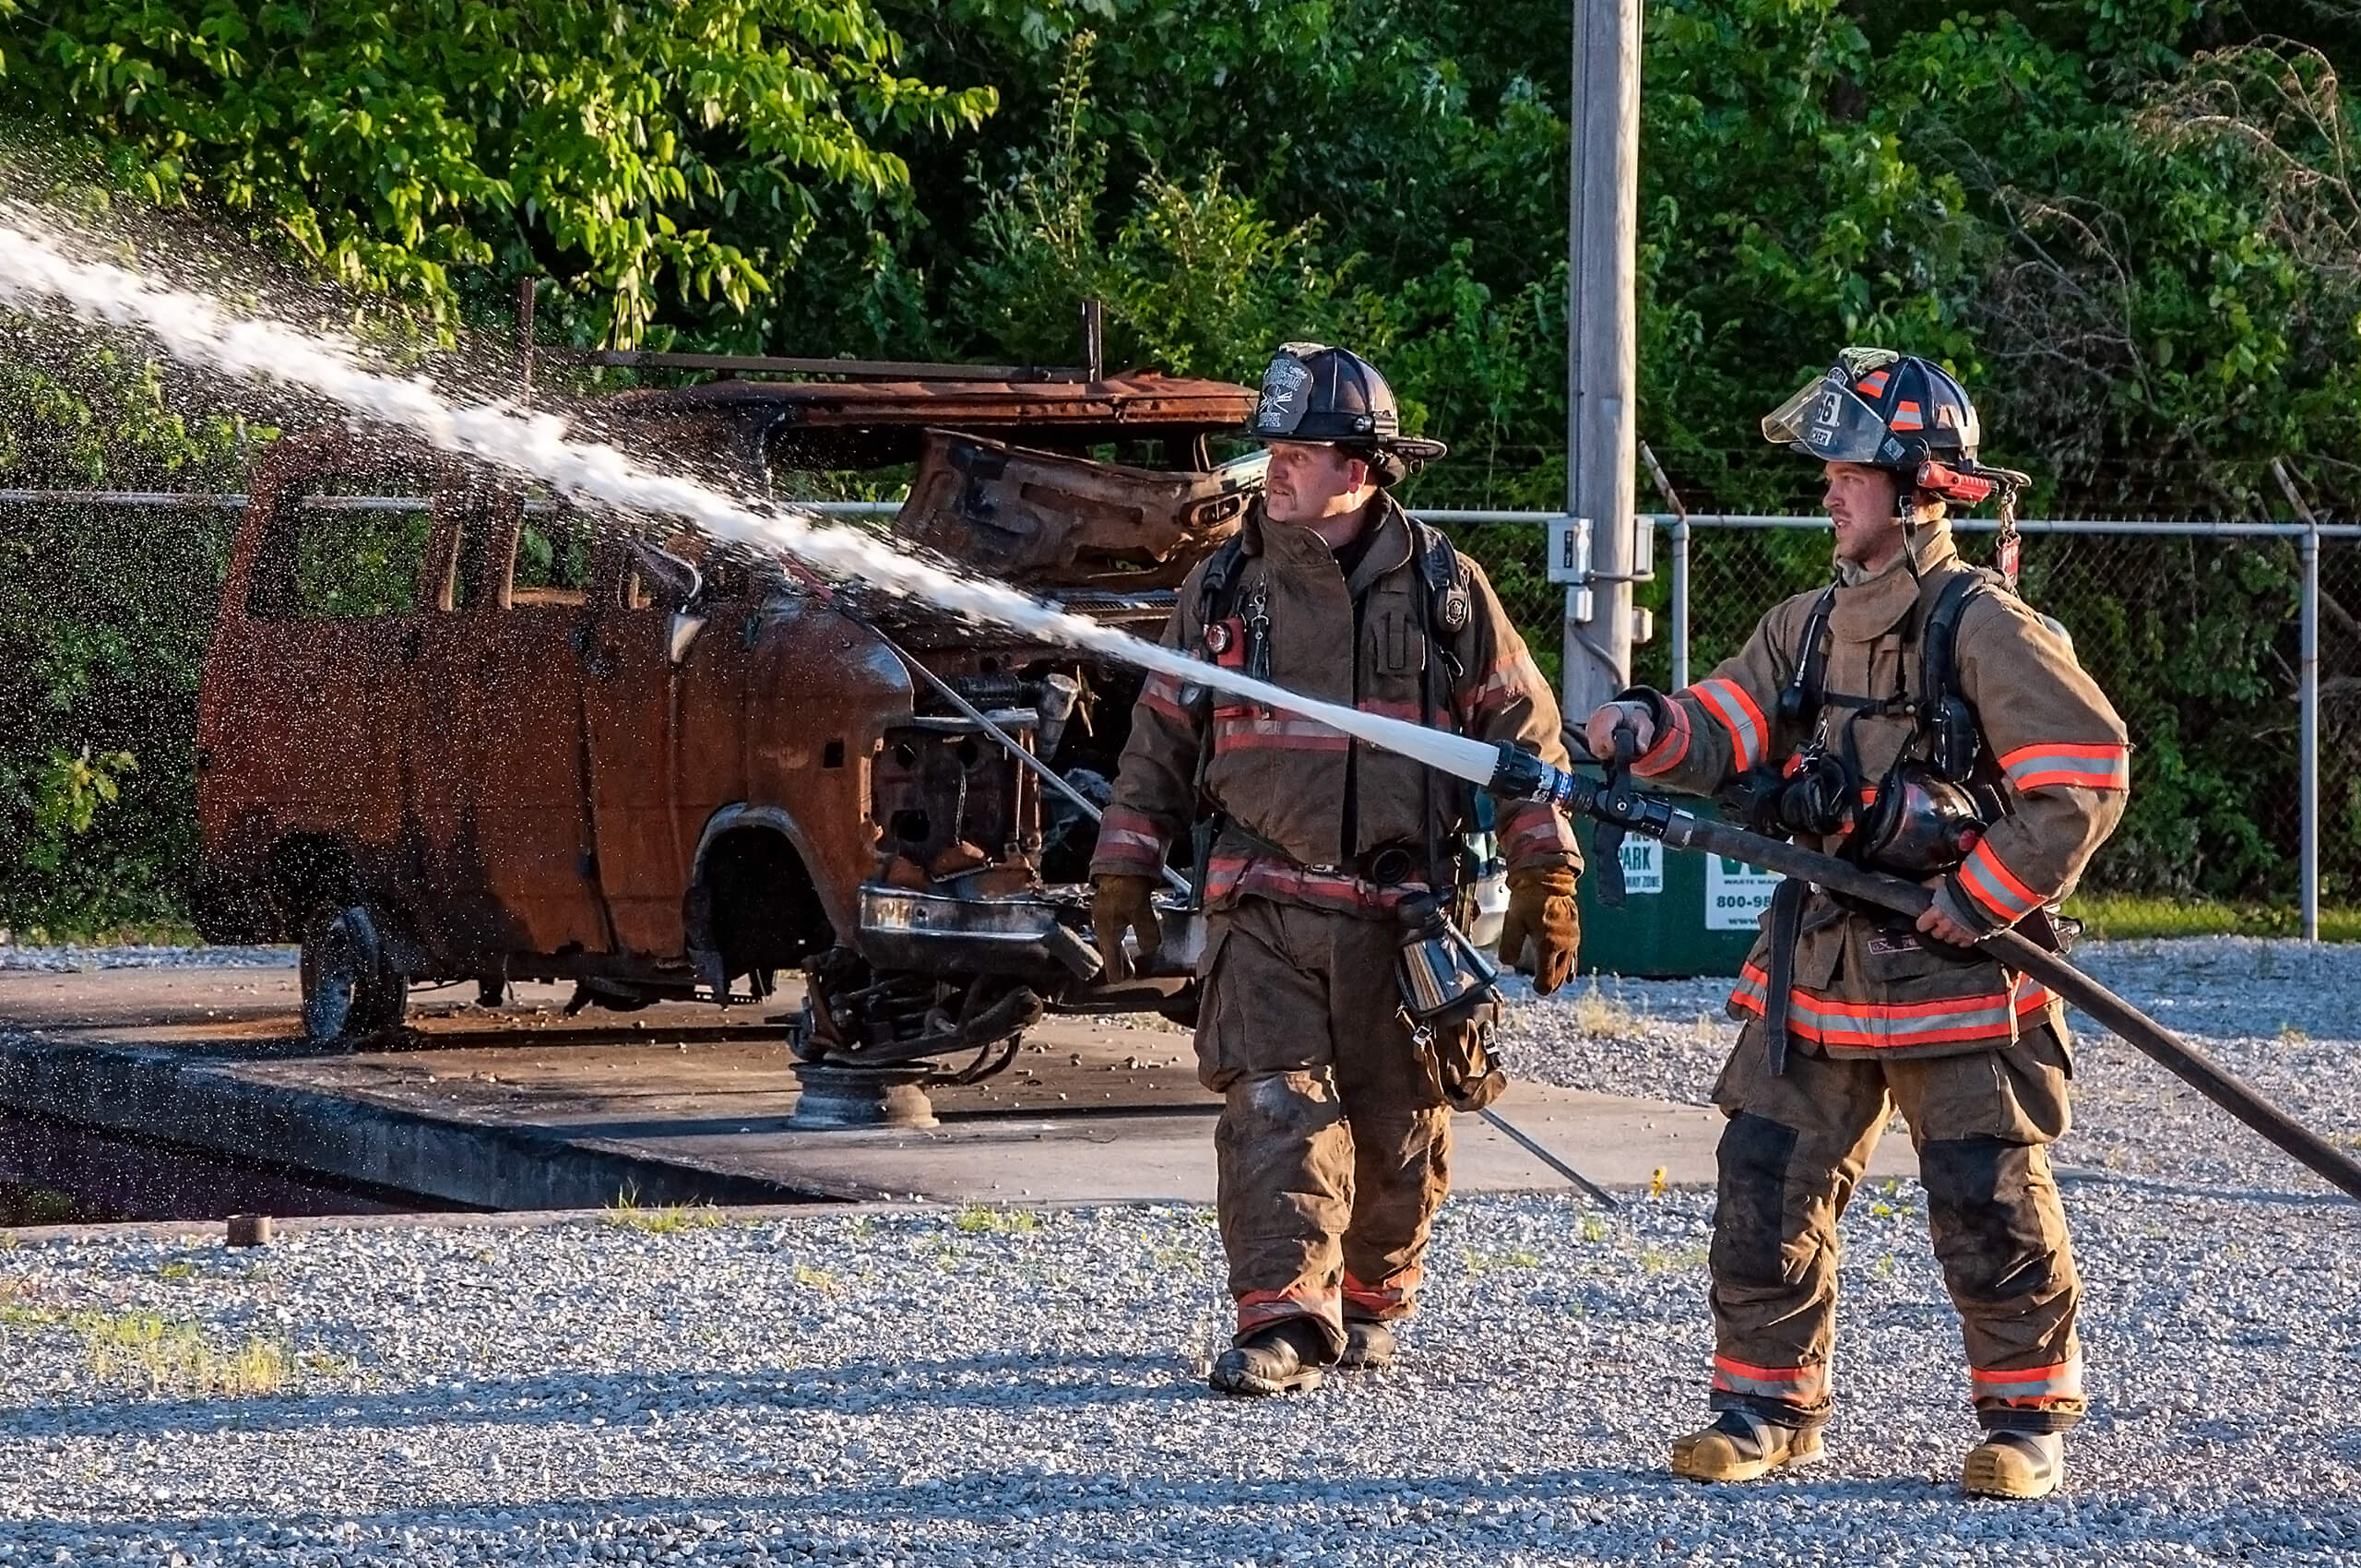 Fireman and trainer with fire hose preparing for a training exercise.